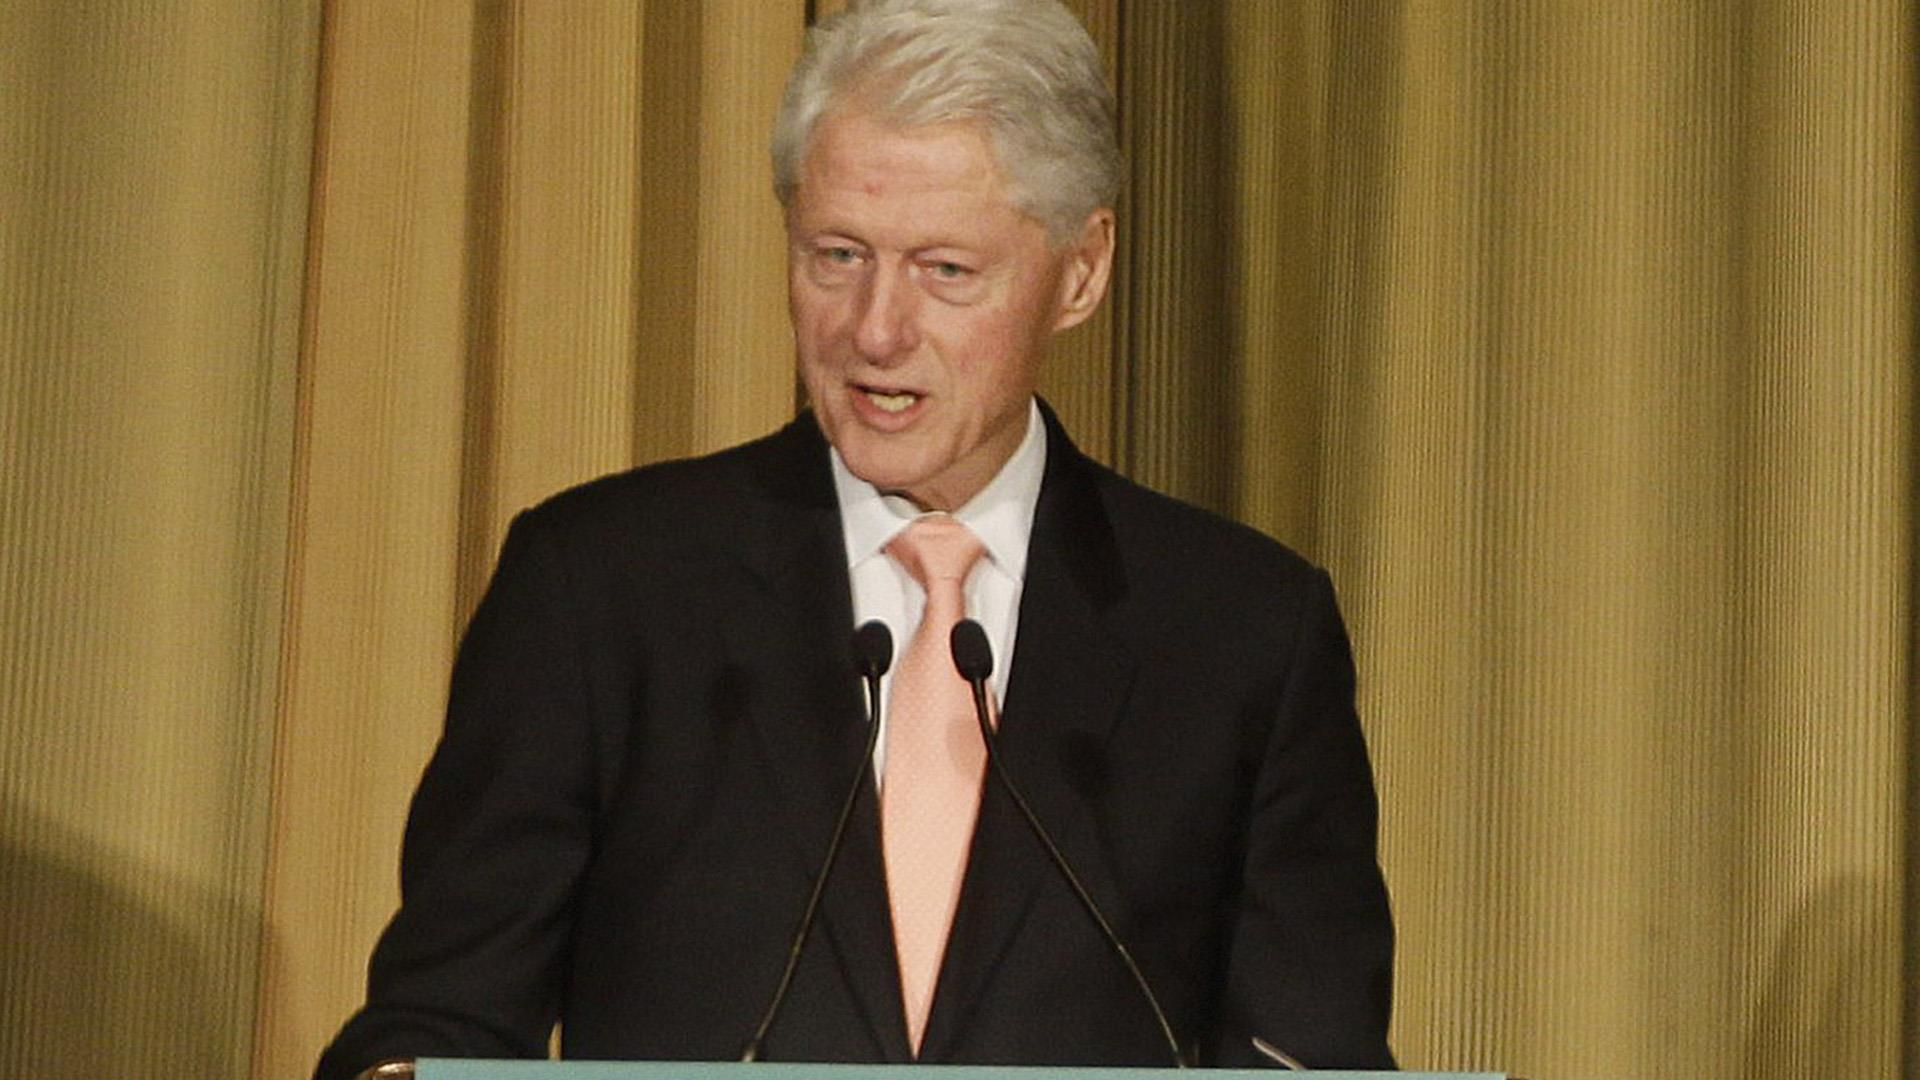 LIVE: Bill Clinton leads DC lecture series